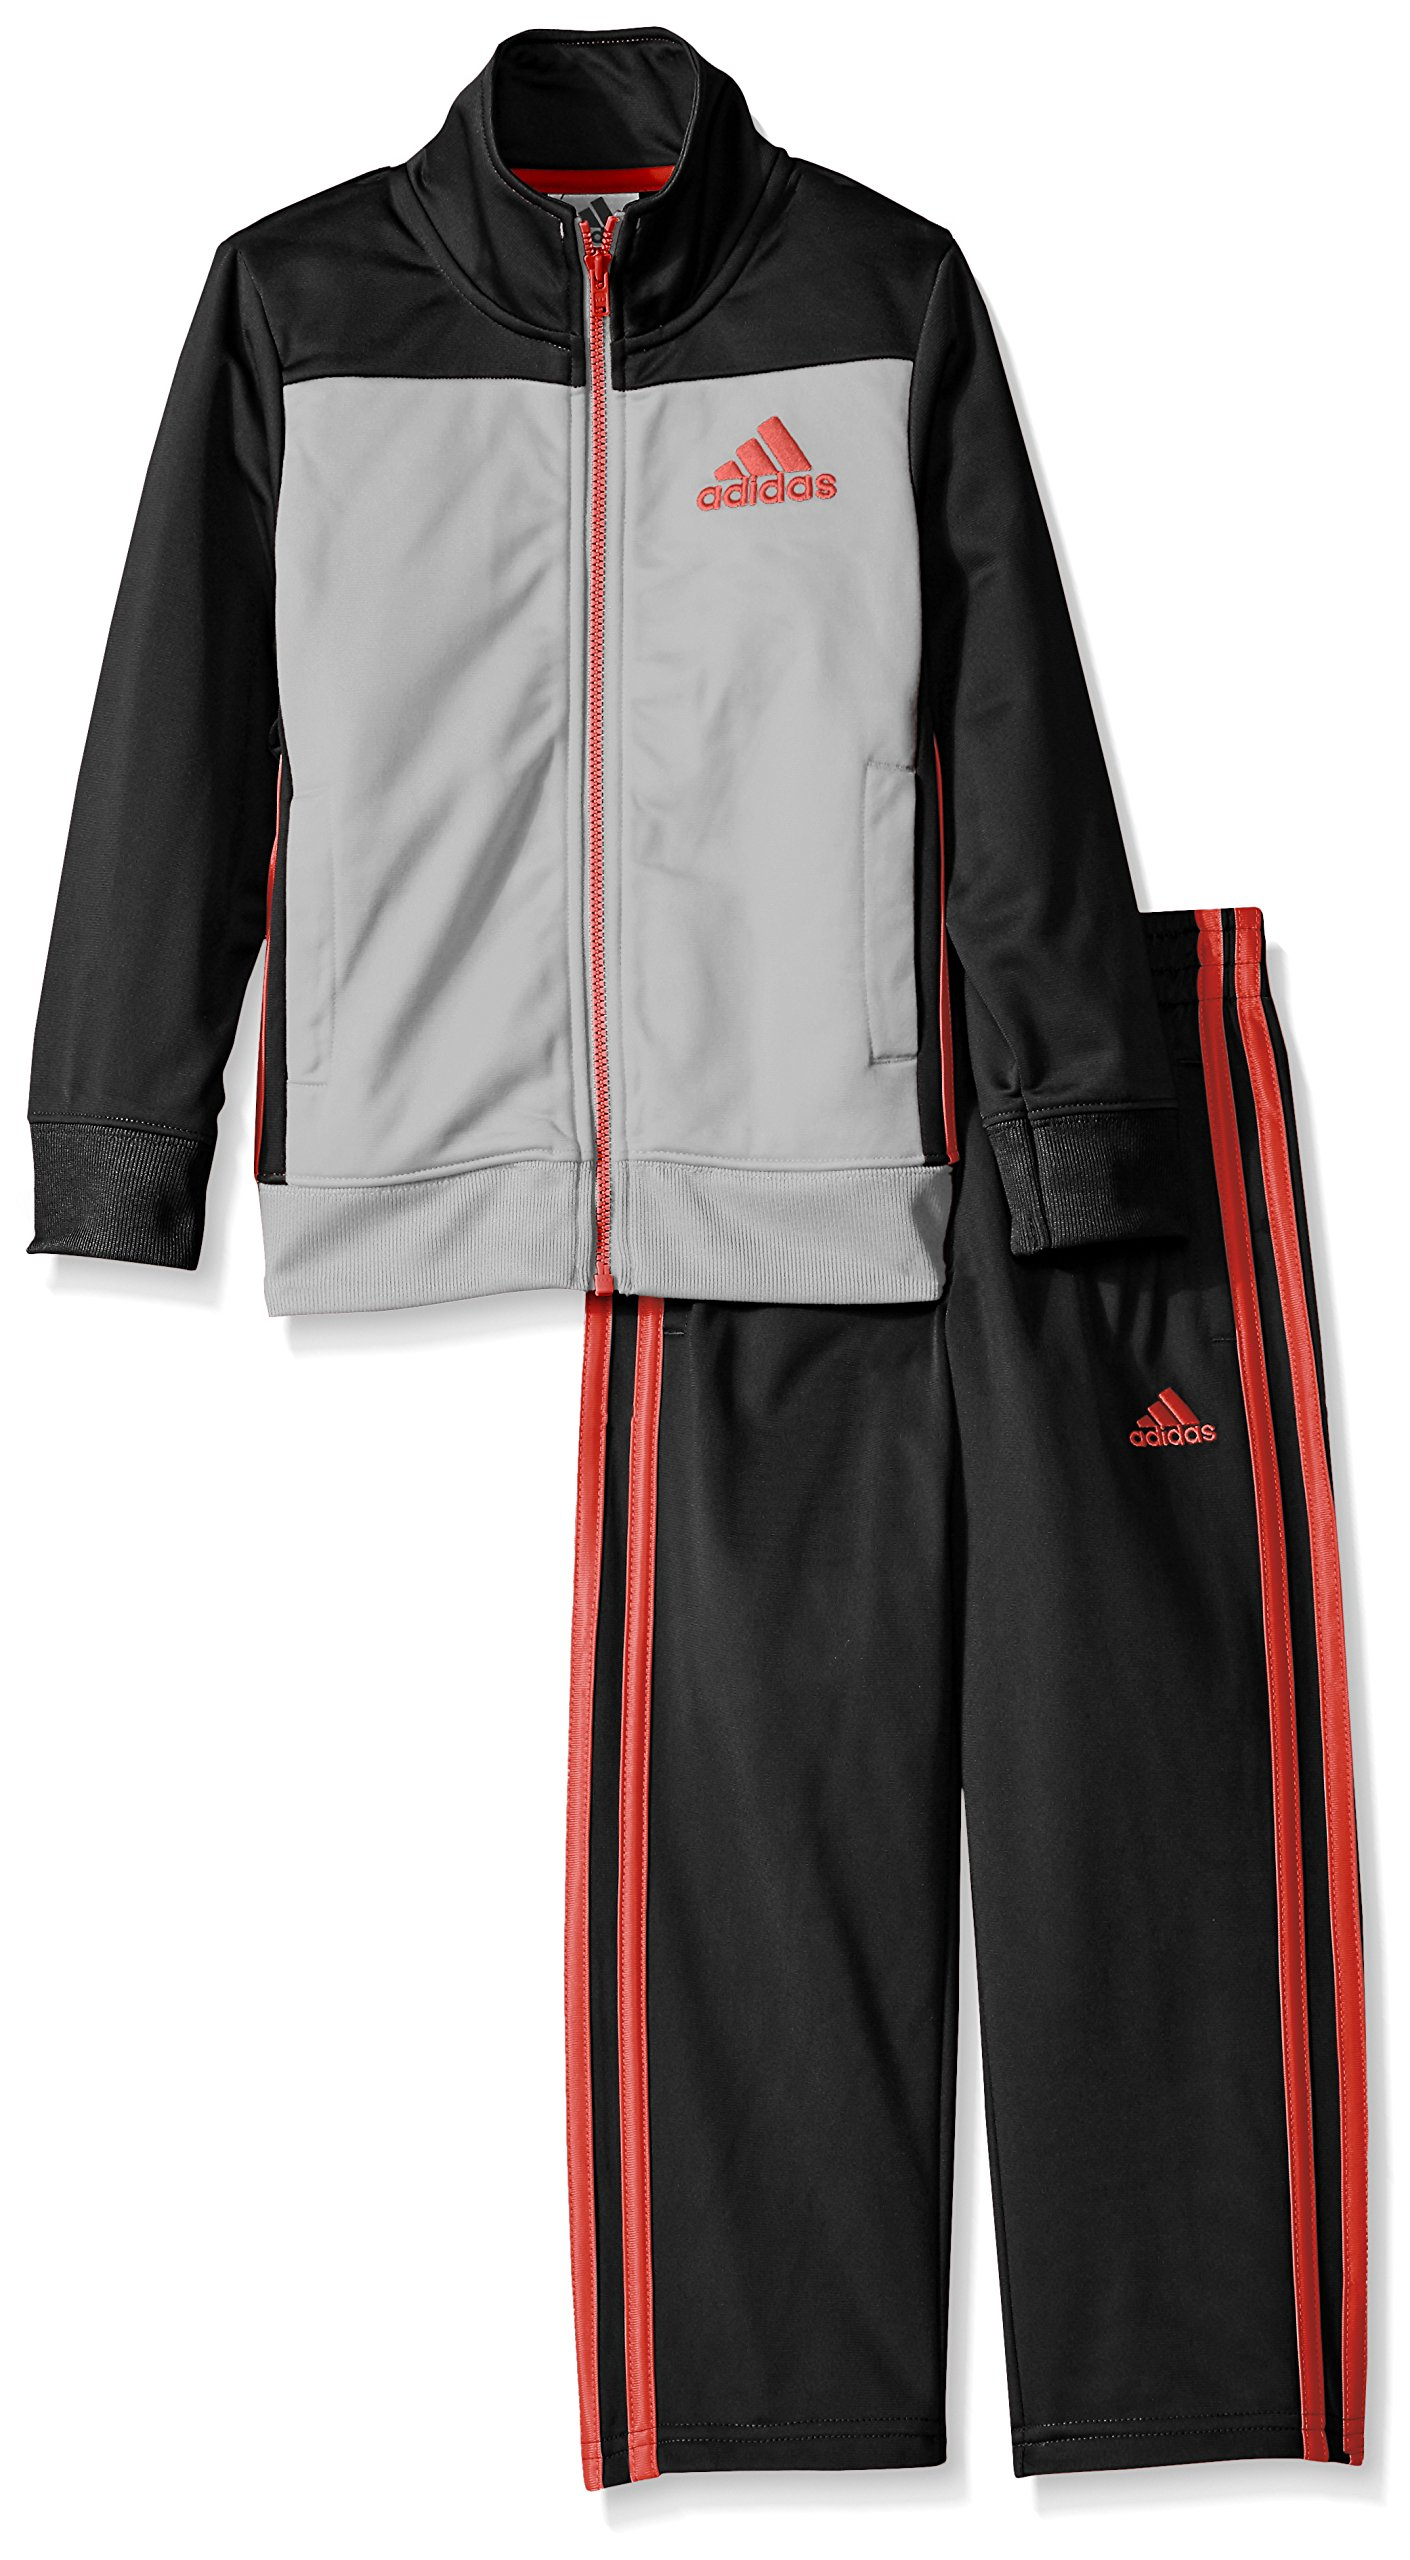 adidas Baby Boys' Tricot Zip Up Jacket and Pant Set, Onix, 6 Months